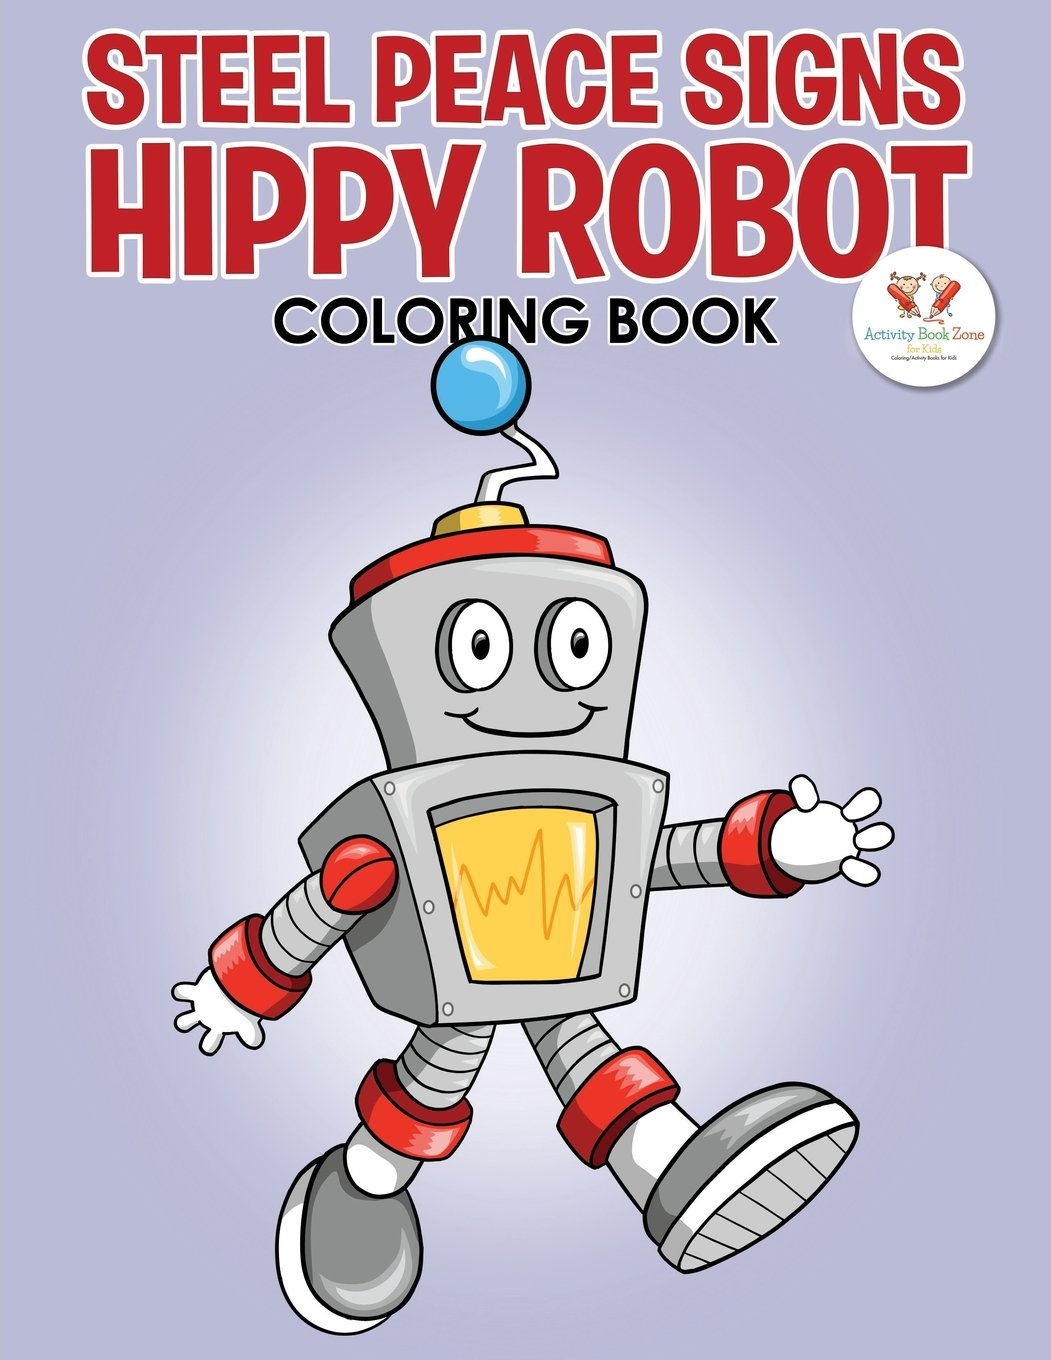 Steel Peace Signs: Hippy Robot Coloring Book: Activity Book Zone for ...